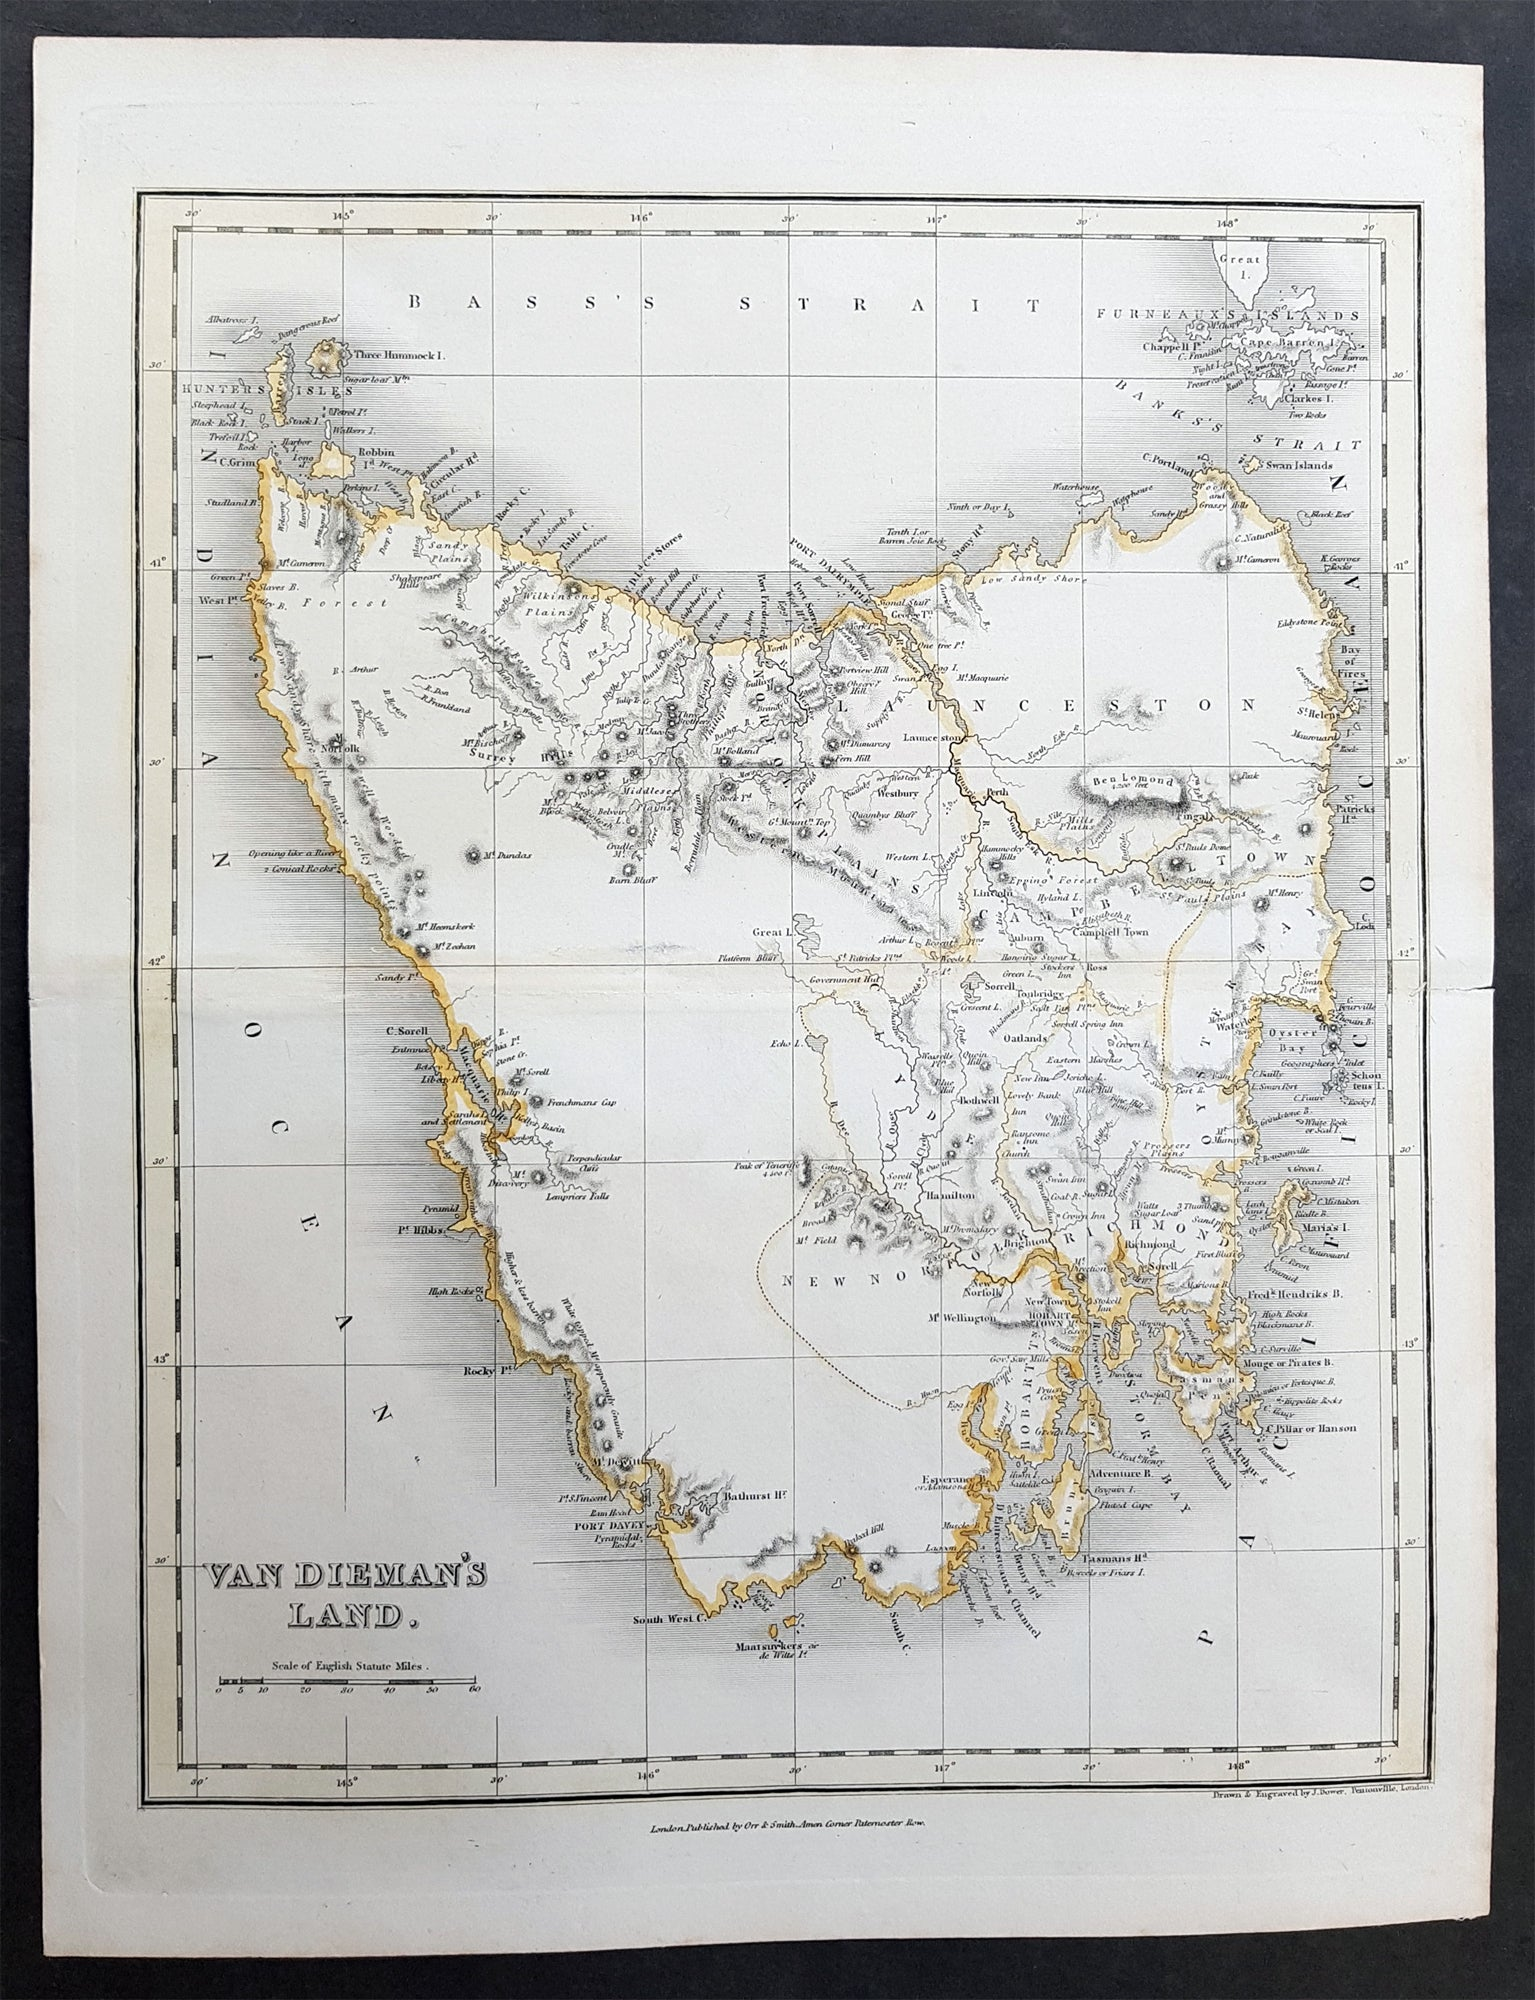 Map Of Australia And Tasmania.1837 John Dower Original Antique Map Of Van Diemens Land Tasmania Australia